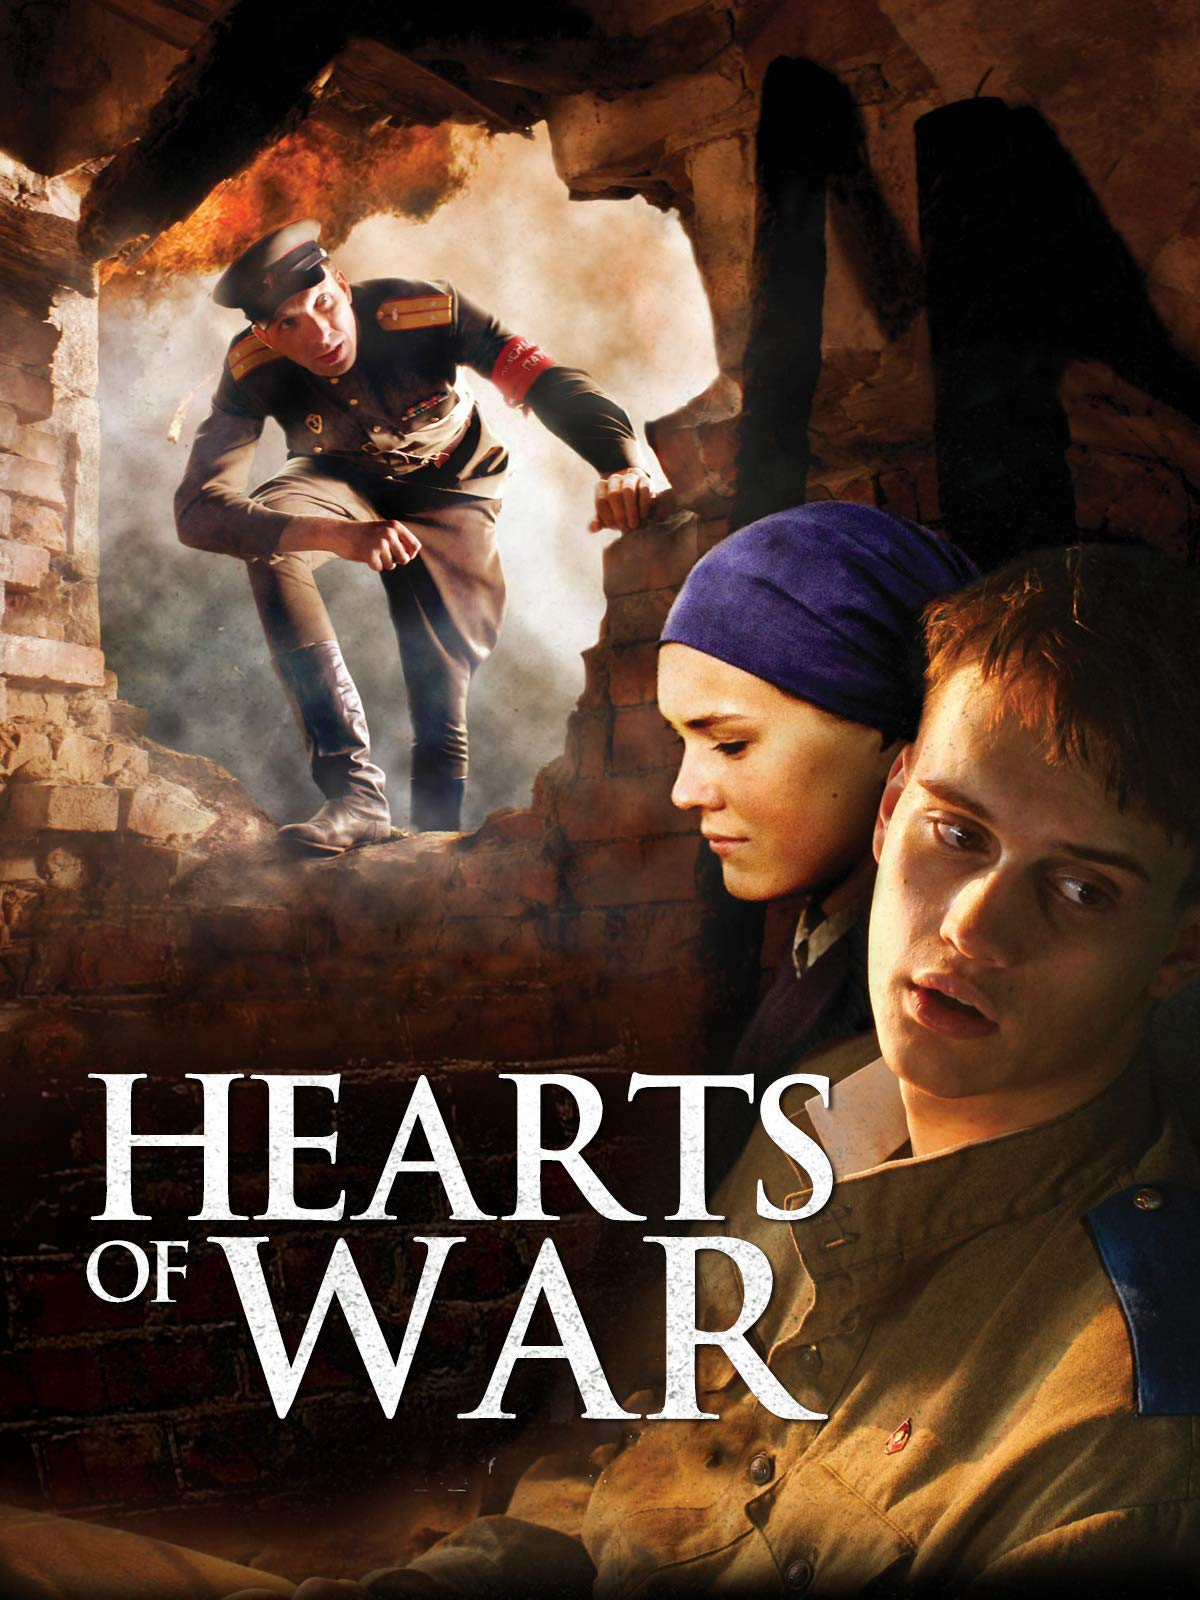 Hearts of war on Amazon Prime Video UK